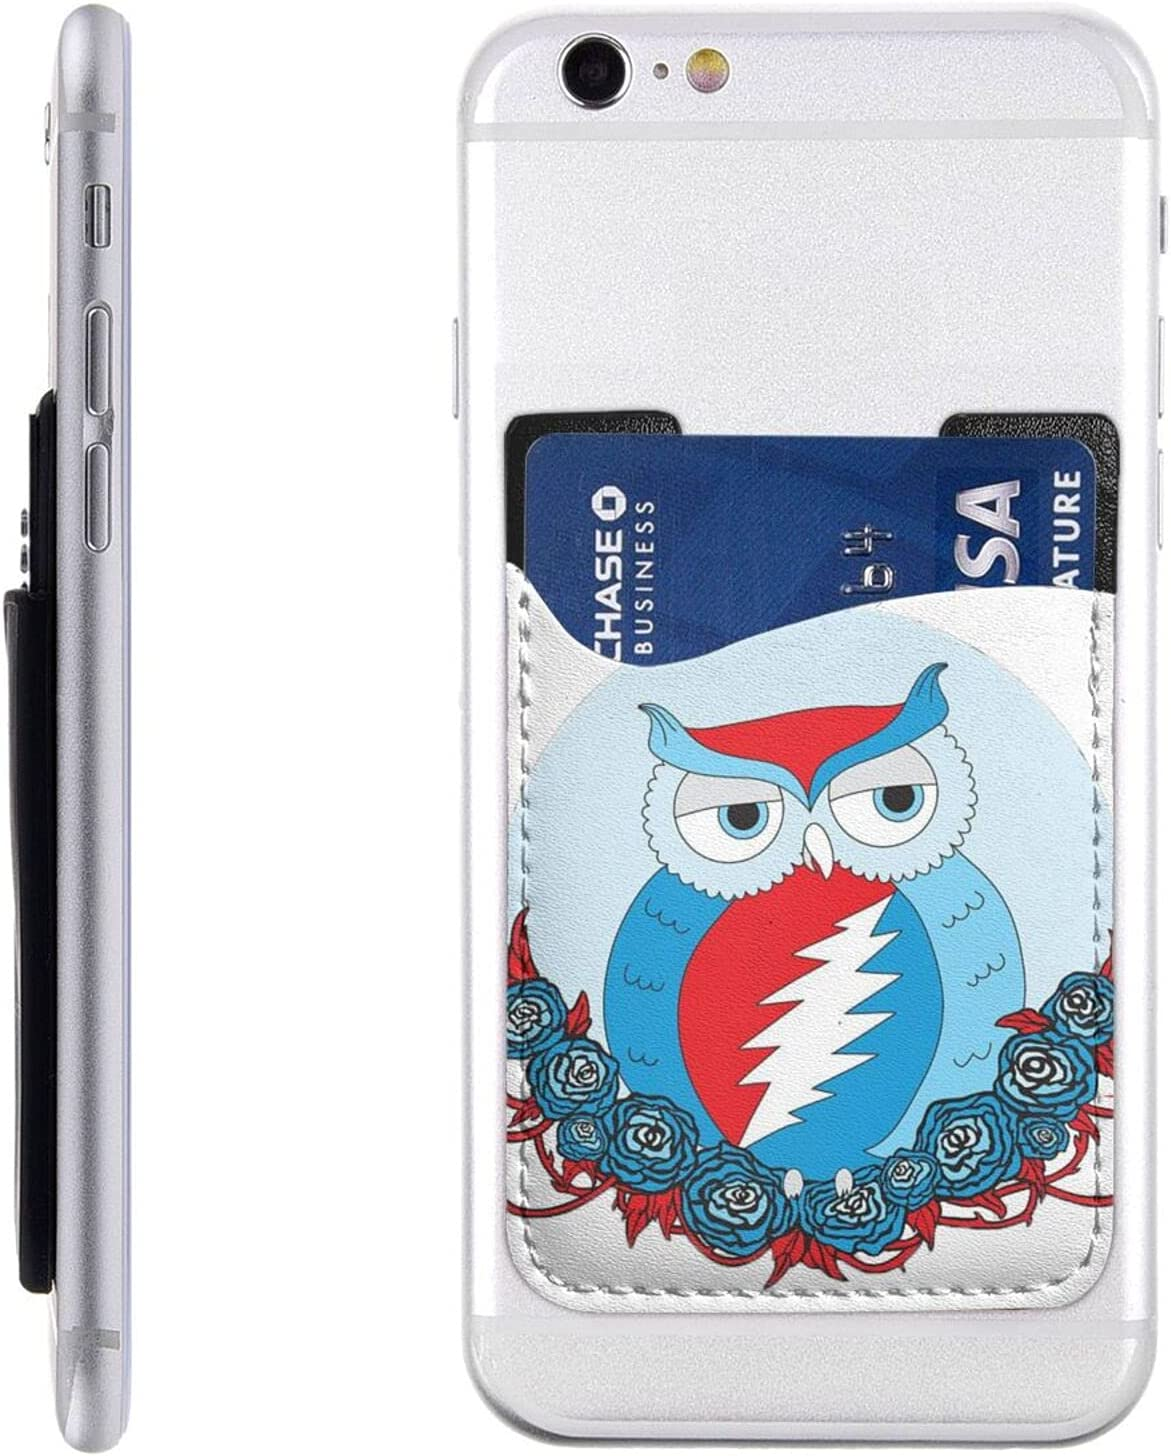 Steal Your Face Owl Phone Card Stick 2021 new Holder W Cell On New arrival